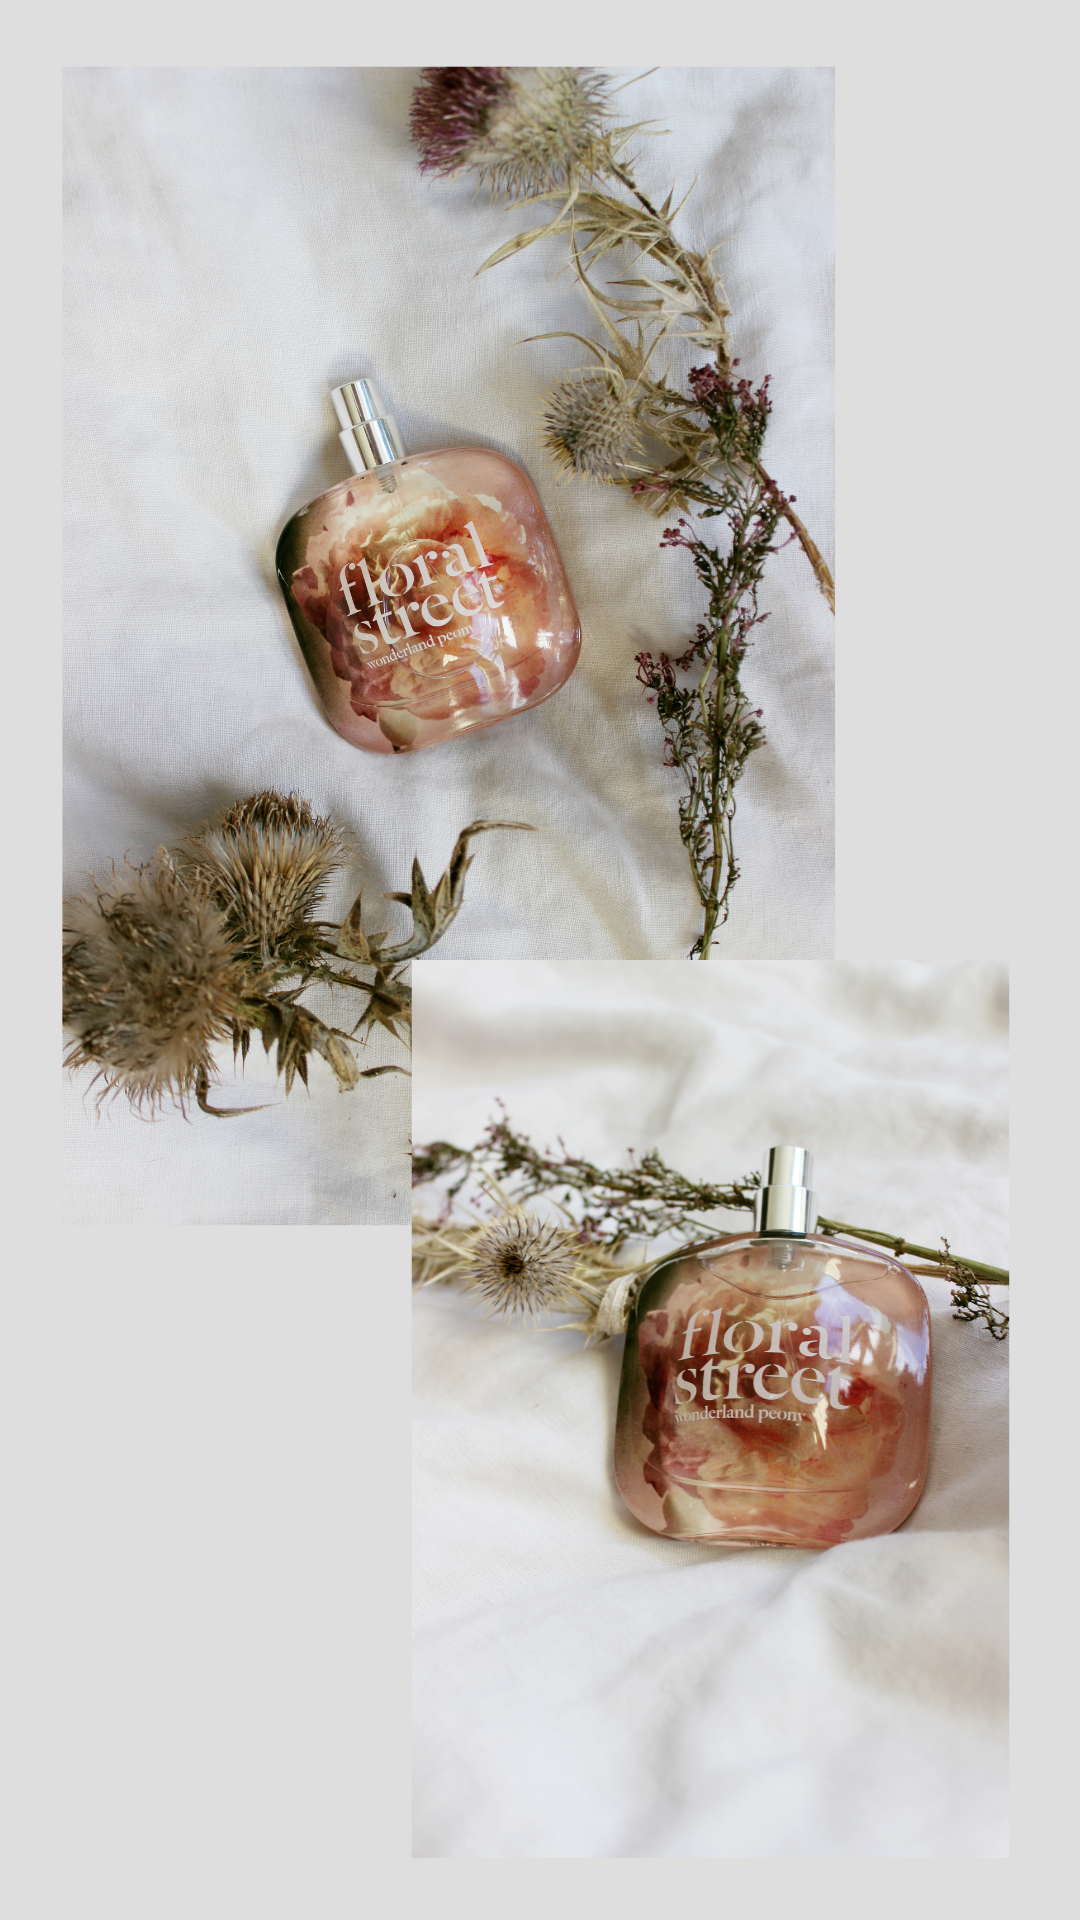 floral street's sustainable and ethical perfume, wonderland peony scent